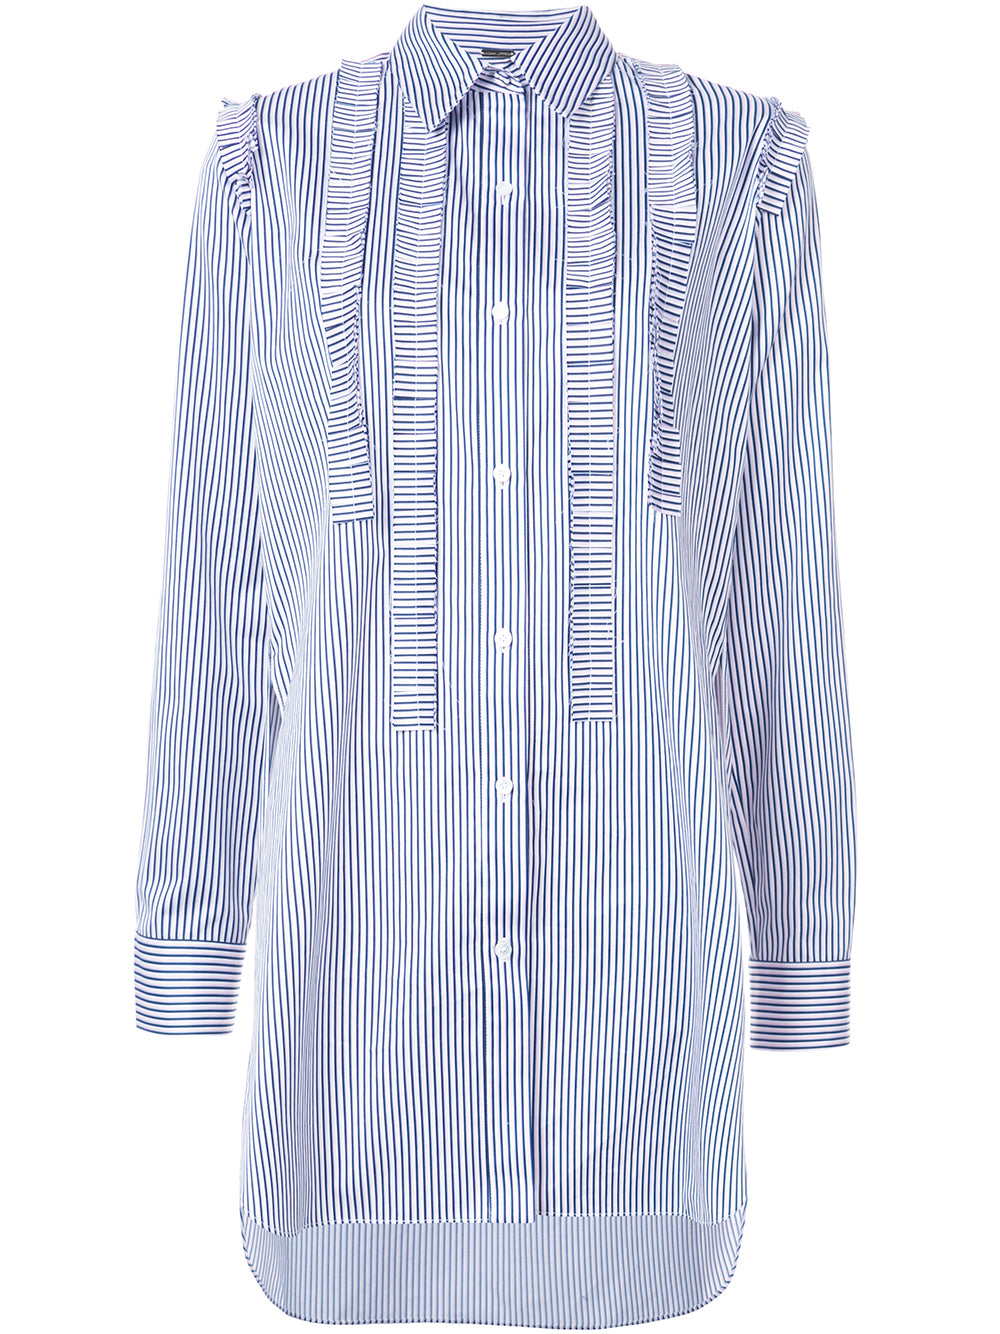 STRIPED COTTON JACQUARD TUNIC WITH PLEATED RUFFLE TRIM